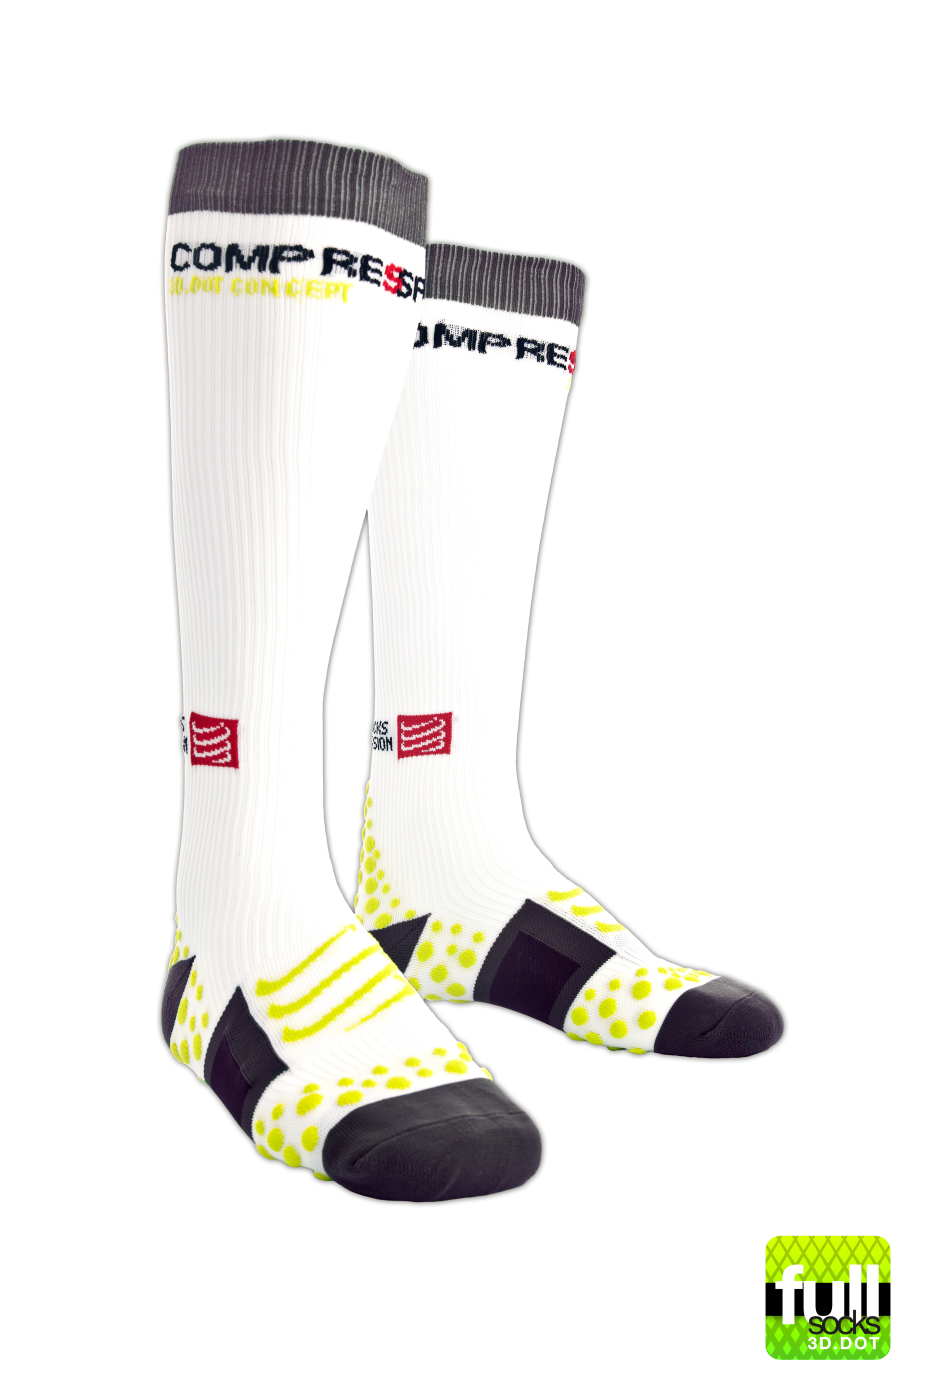 Full Socks v1 - White (1)